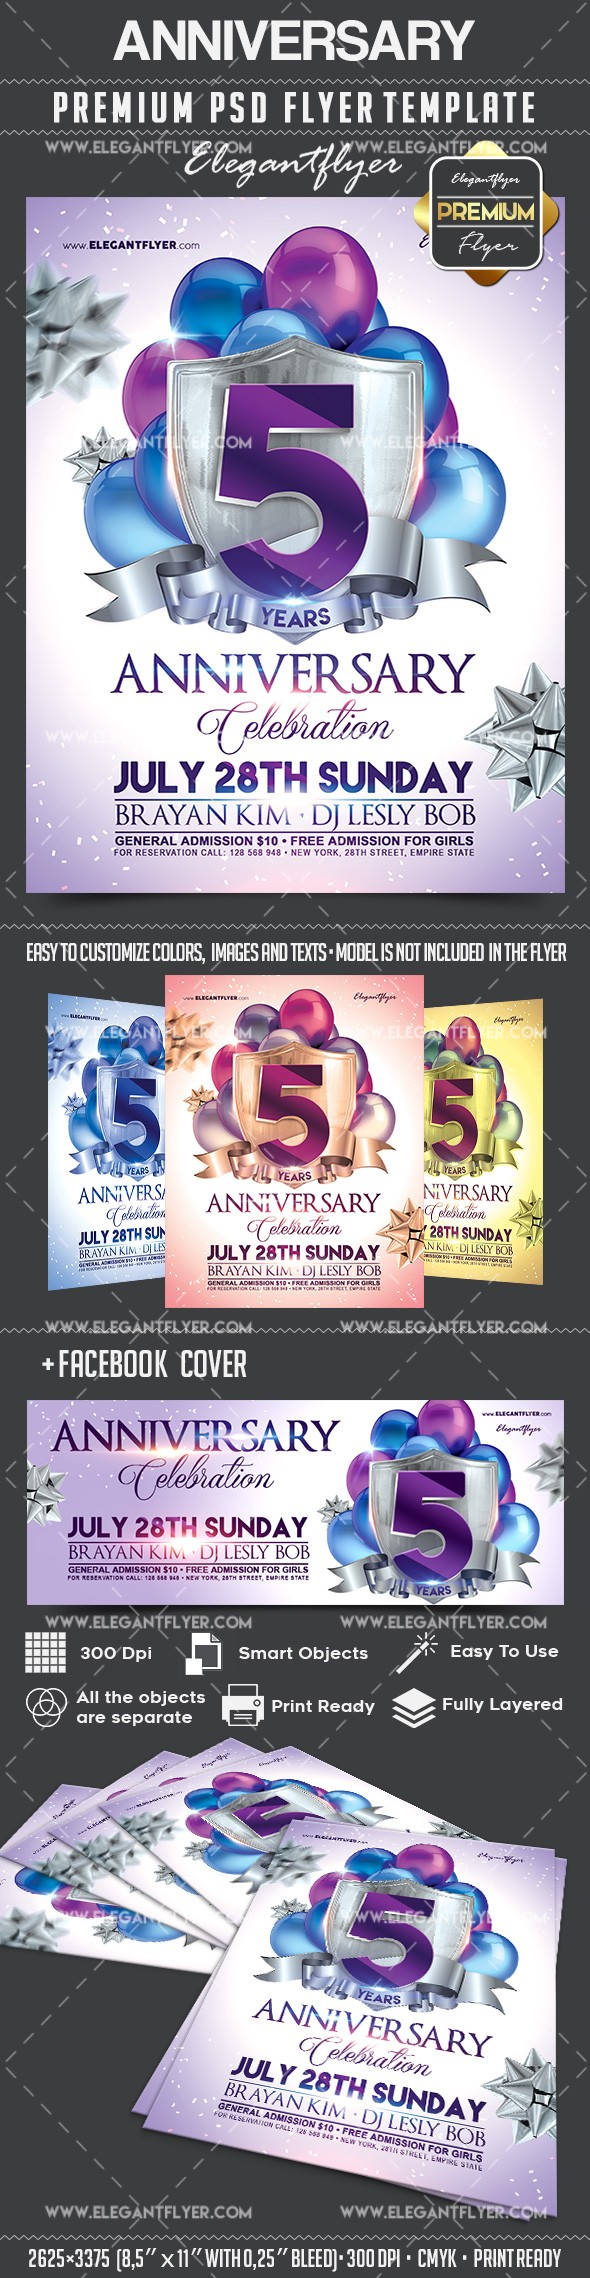 Template for Anniversary Theme – by ElegantFlyer